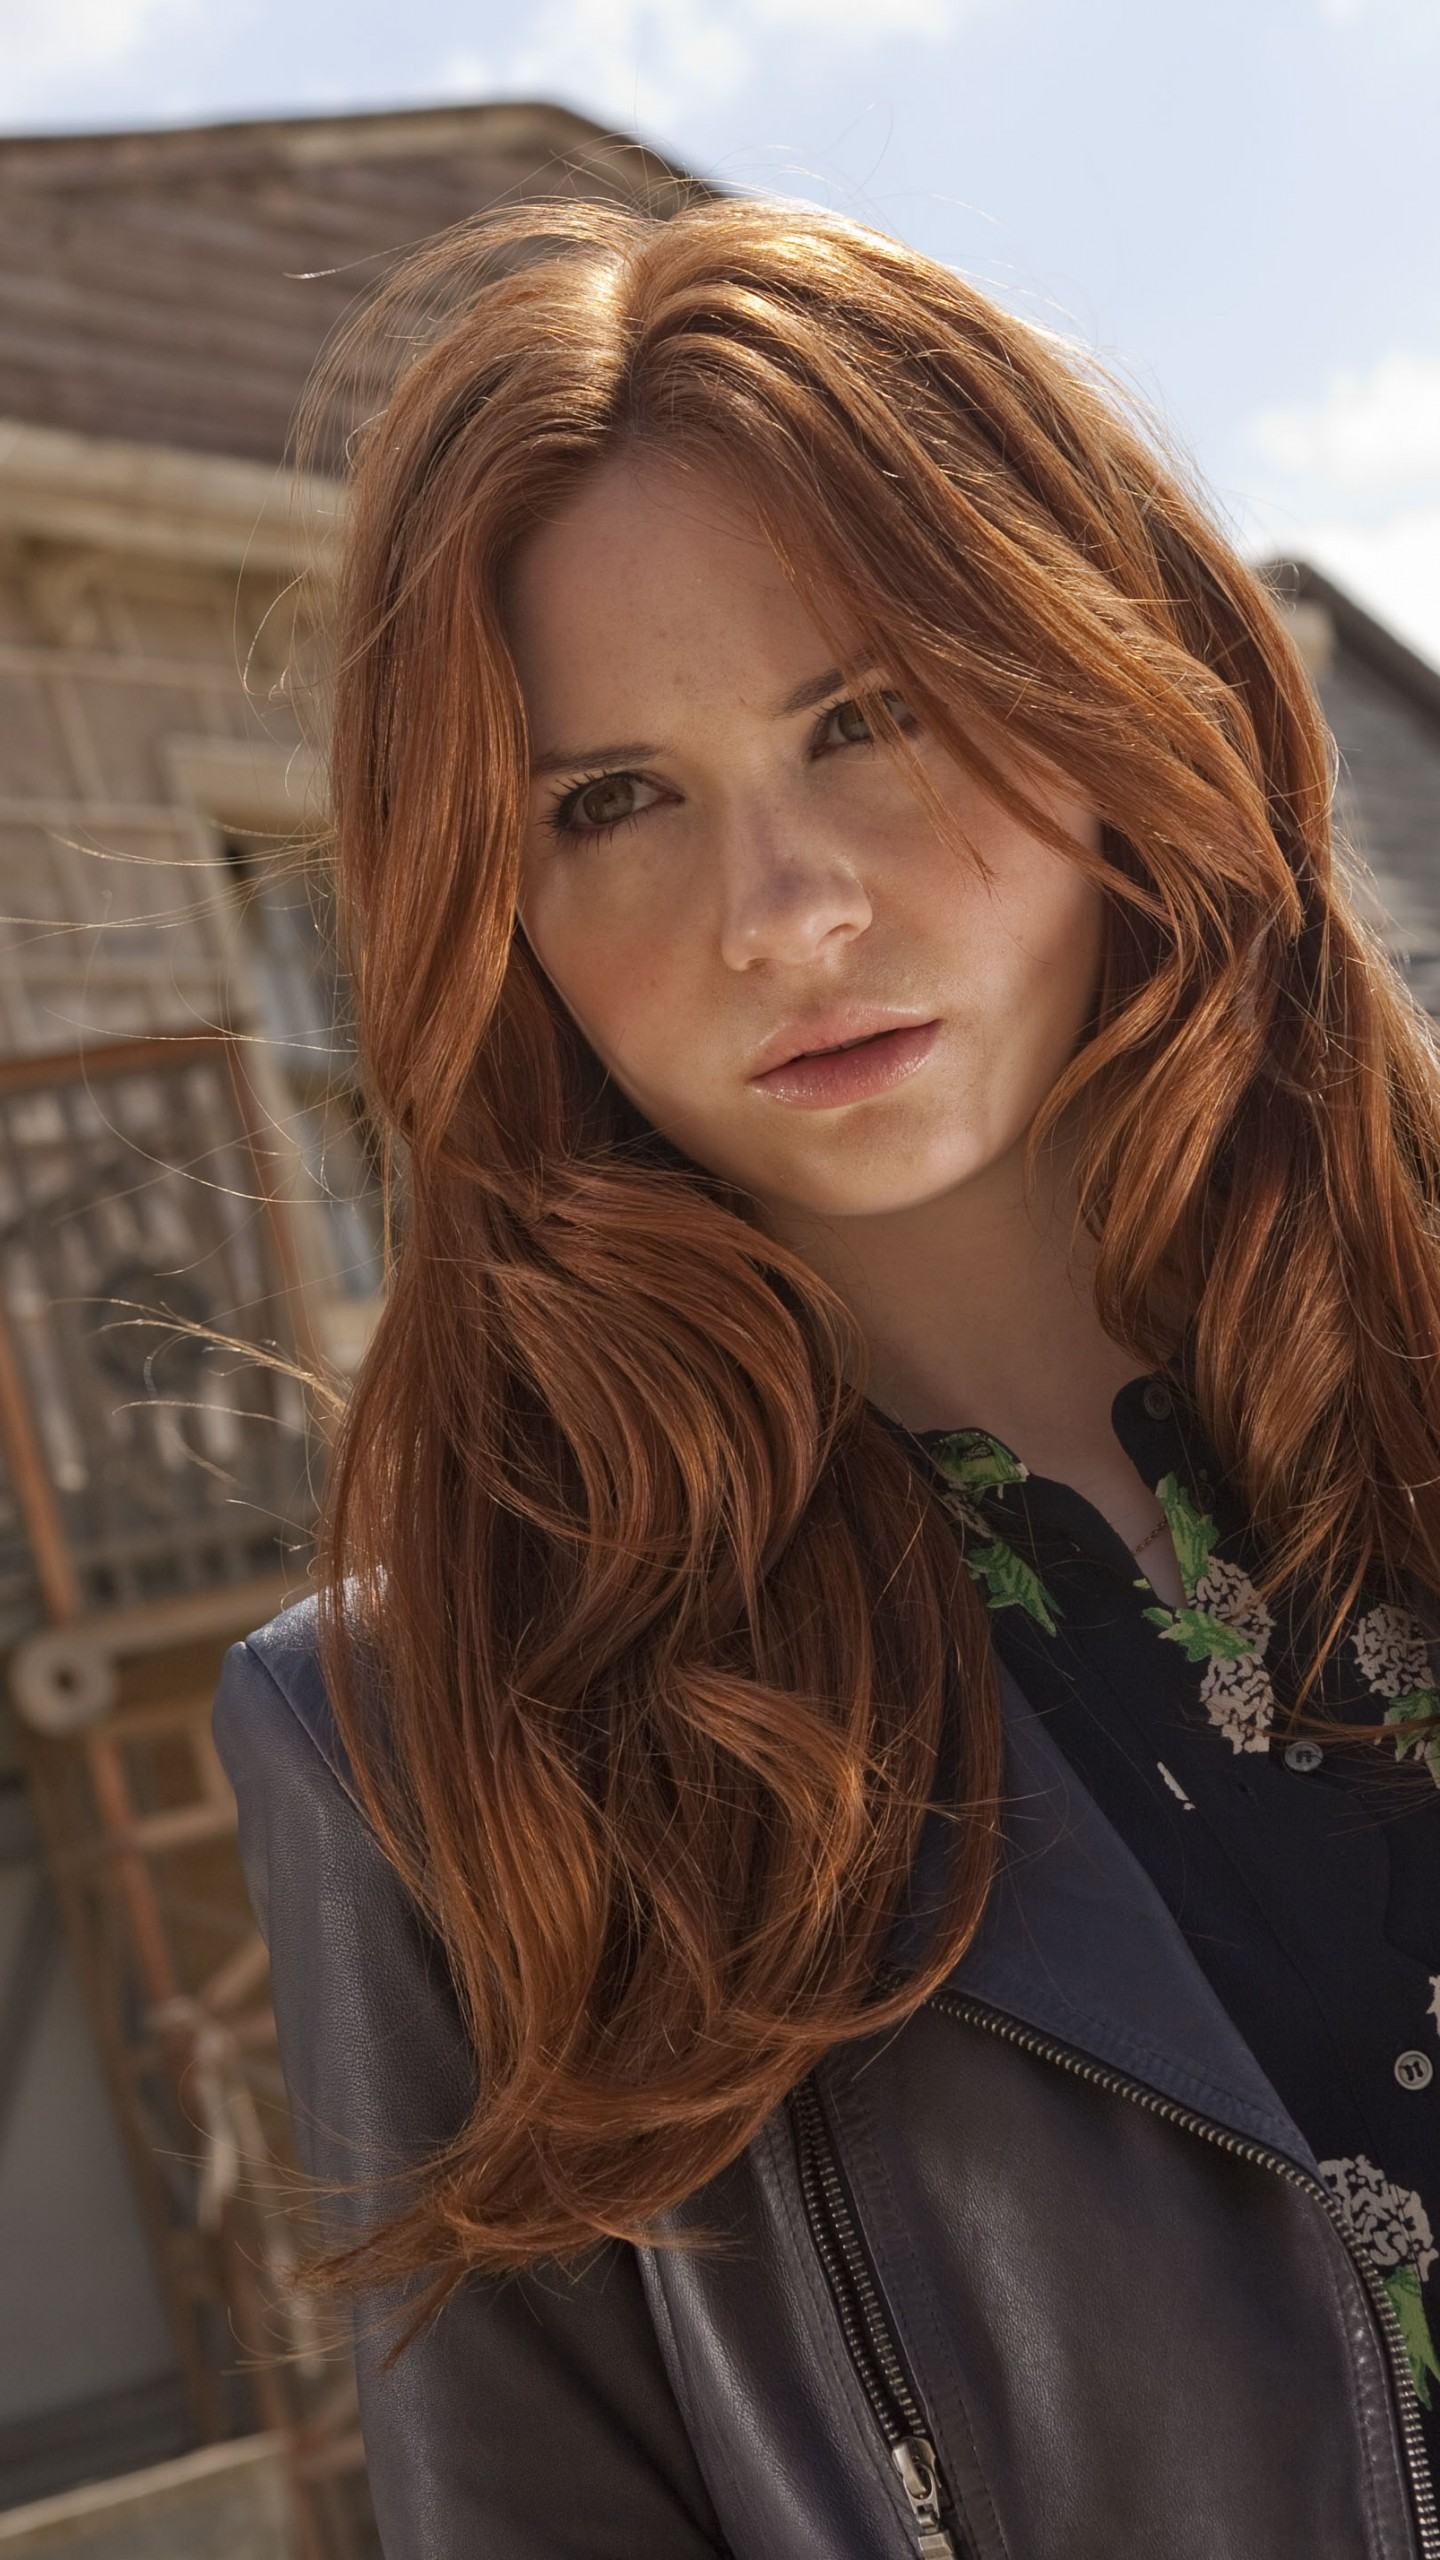 Most Popular Teen Girl Hairstyles: Wallpaper Karen Gillan, Most Popular Celebs, Actress